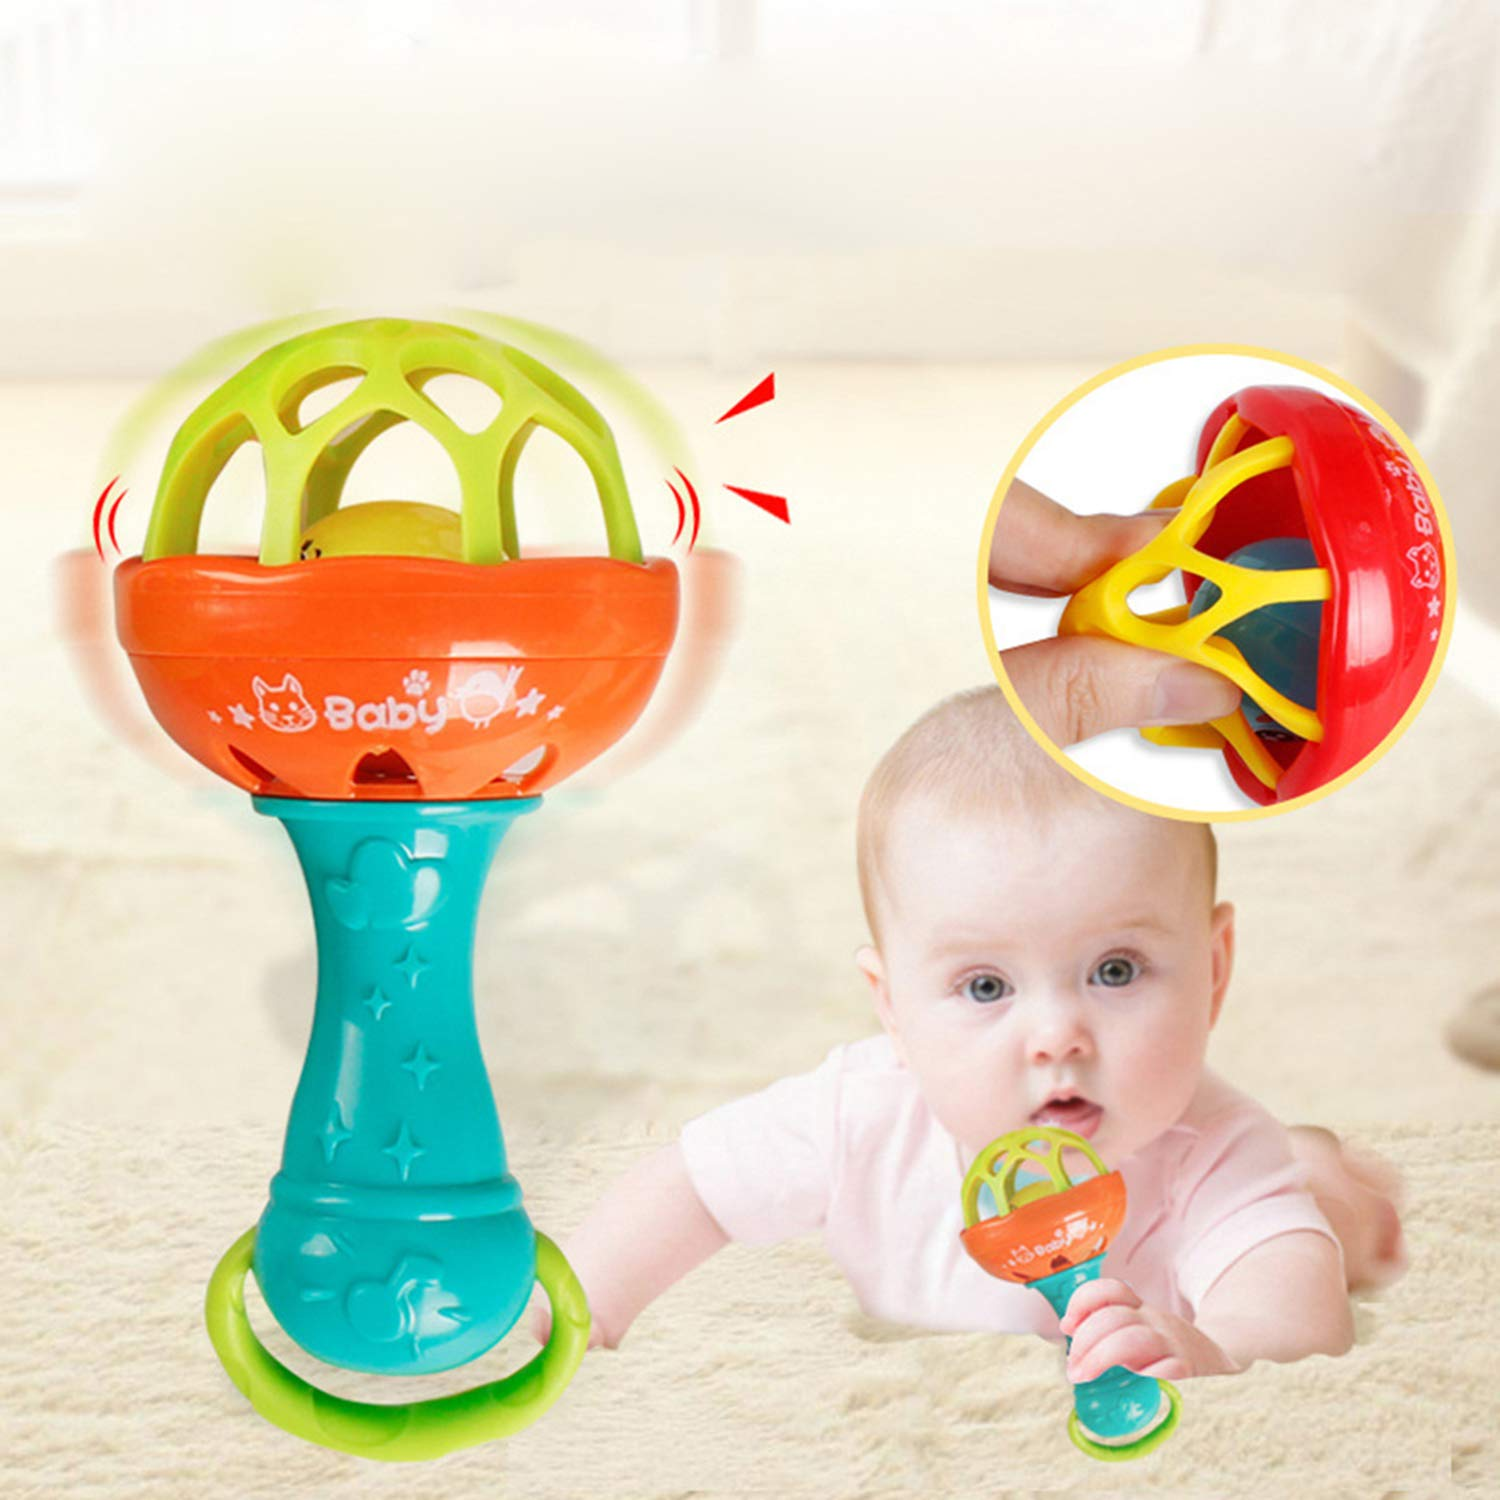 Loveje Soft Glue Stick Multi-Function Baby Hand Rattle Toy with Teether Small Ball Baby Jingle Shaking Bell Baby Educational Toys Spin Rattle Gift for 0-1 Year Old boy Girl 1PCs